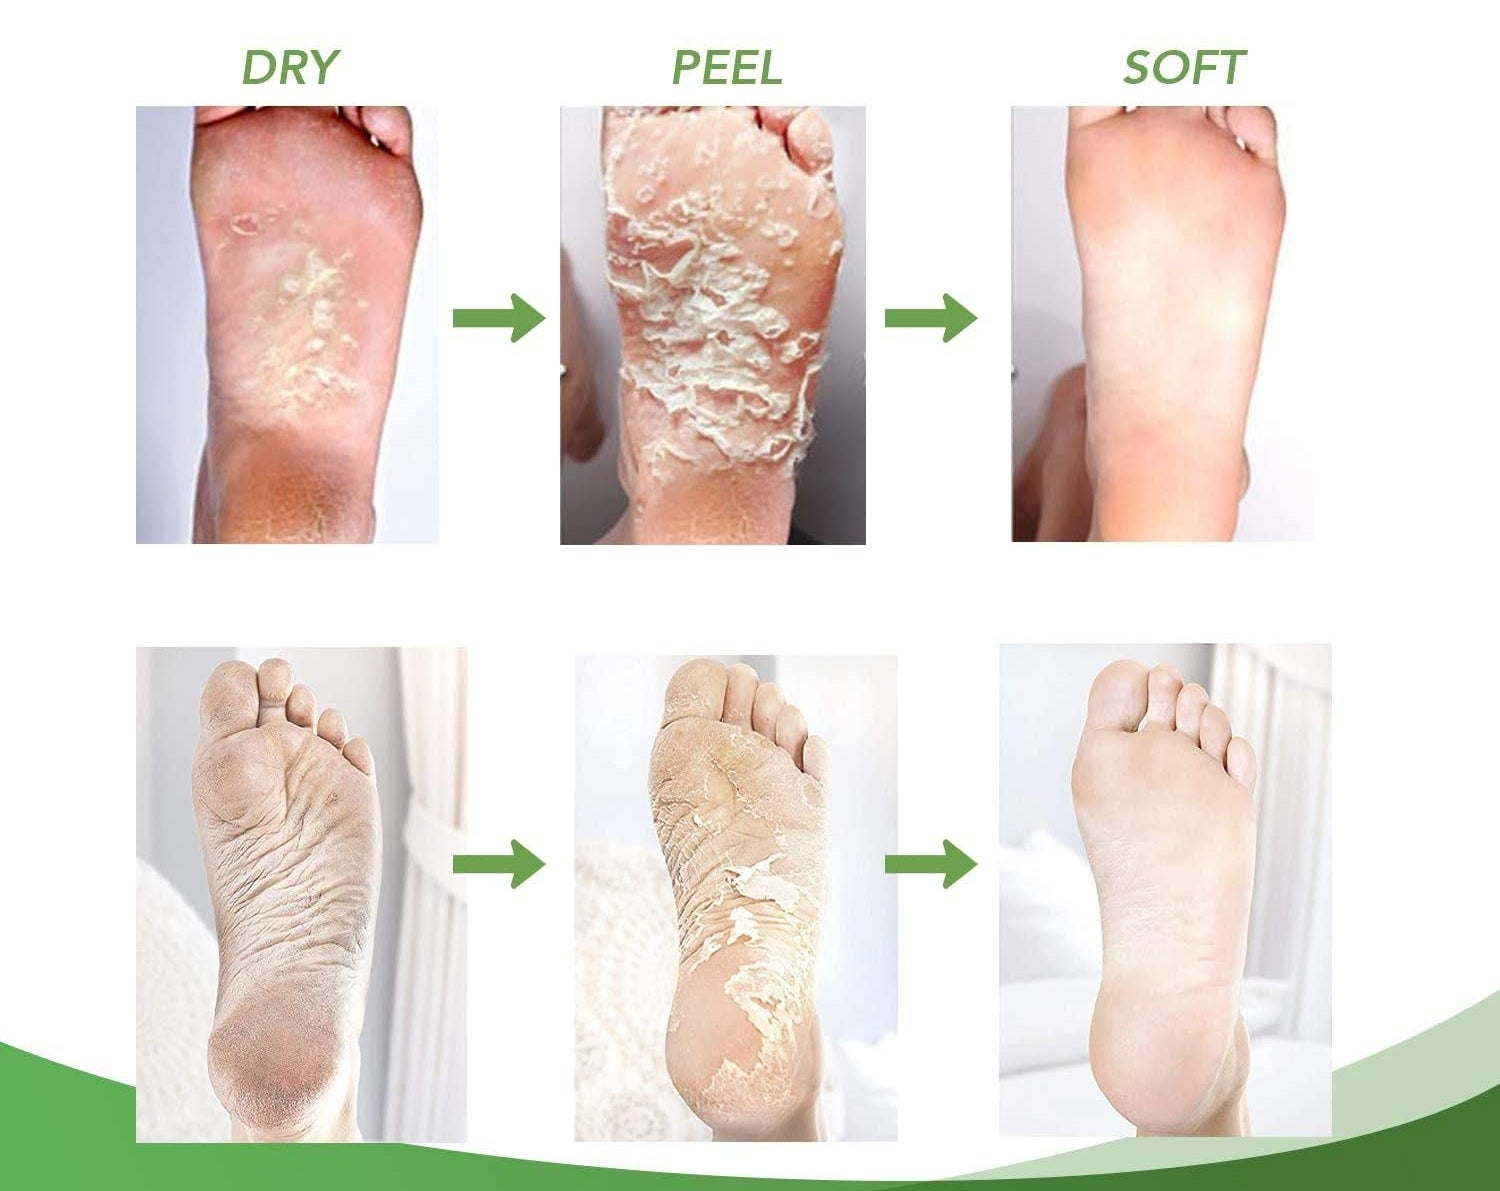 A progress photo showing dead skin peeling off the foot